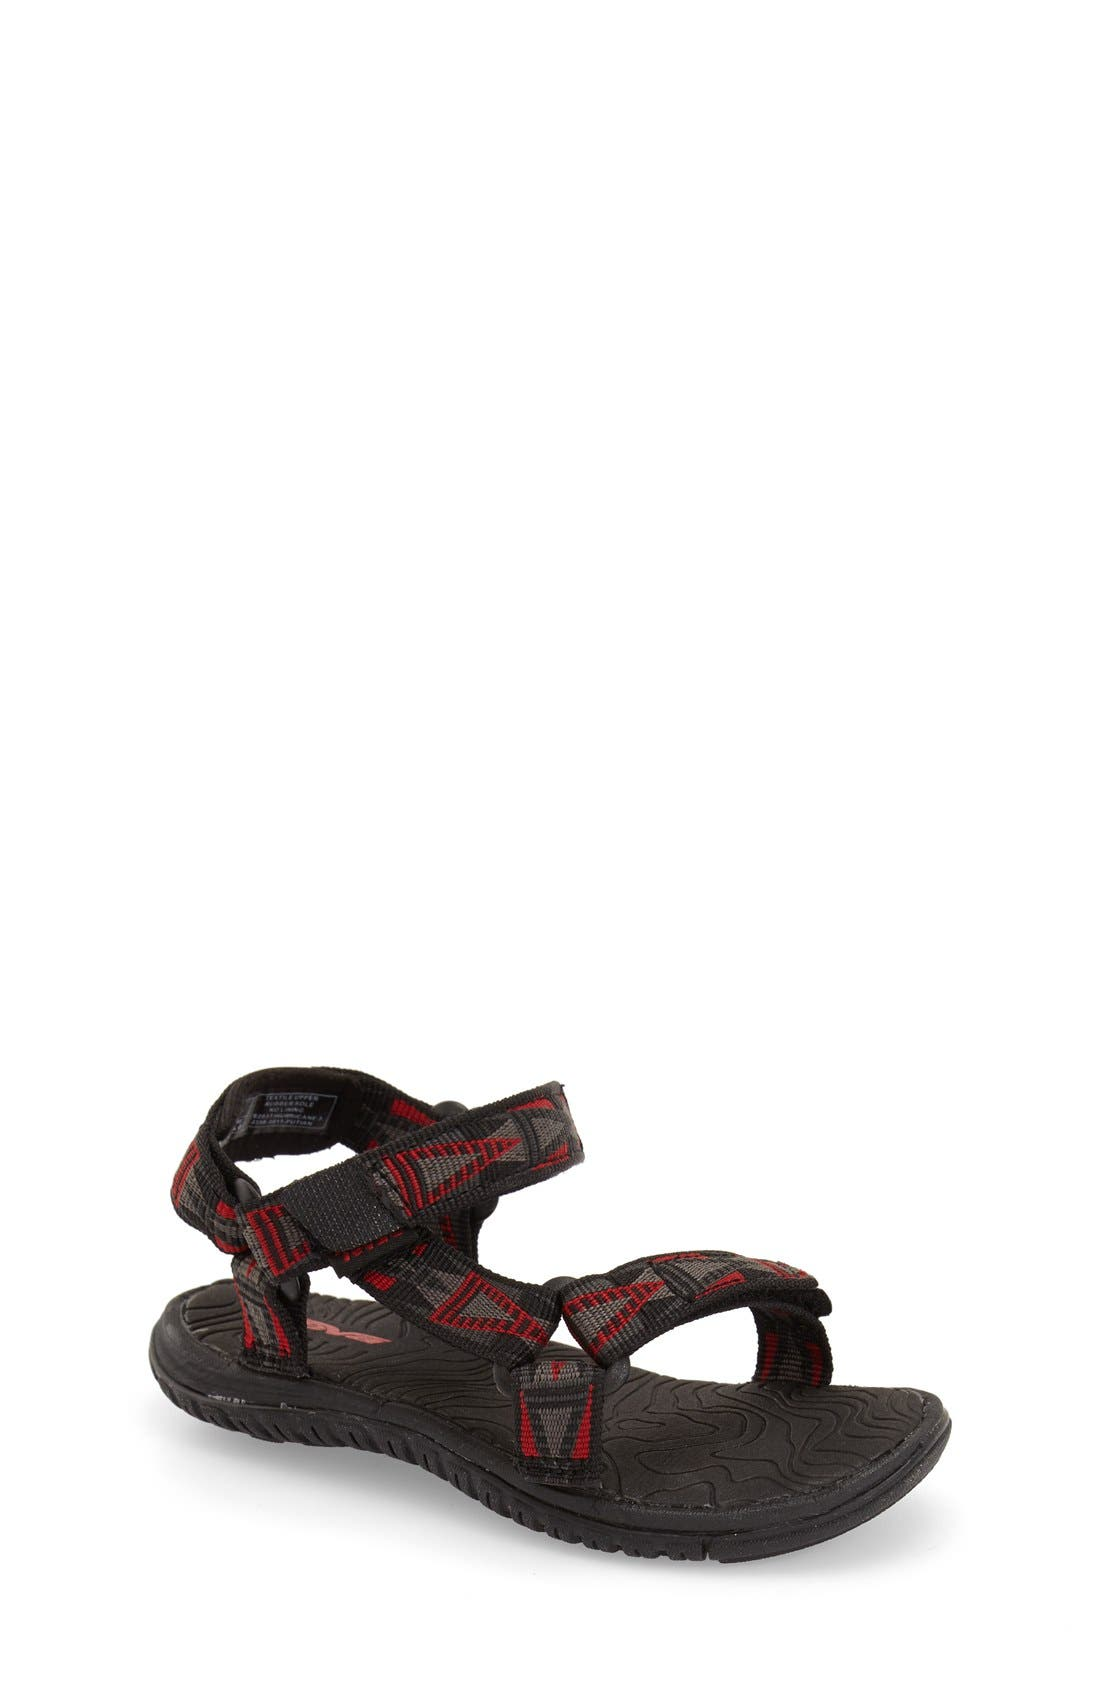 'Hurricane 3' Sport Sandal,                             Main thumbnail 1, color,                             003